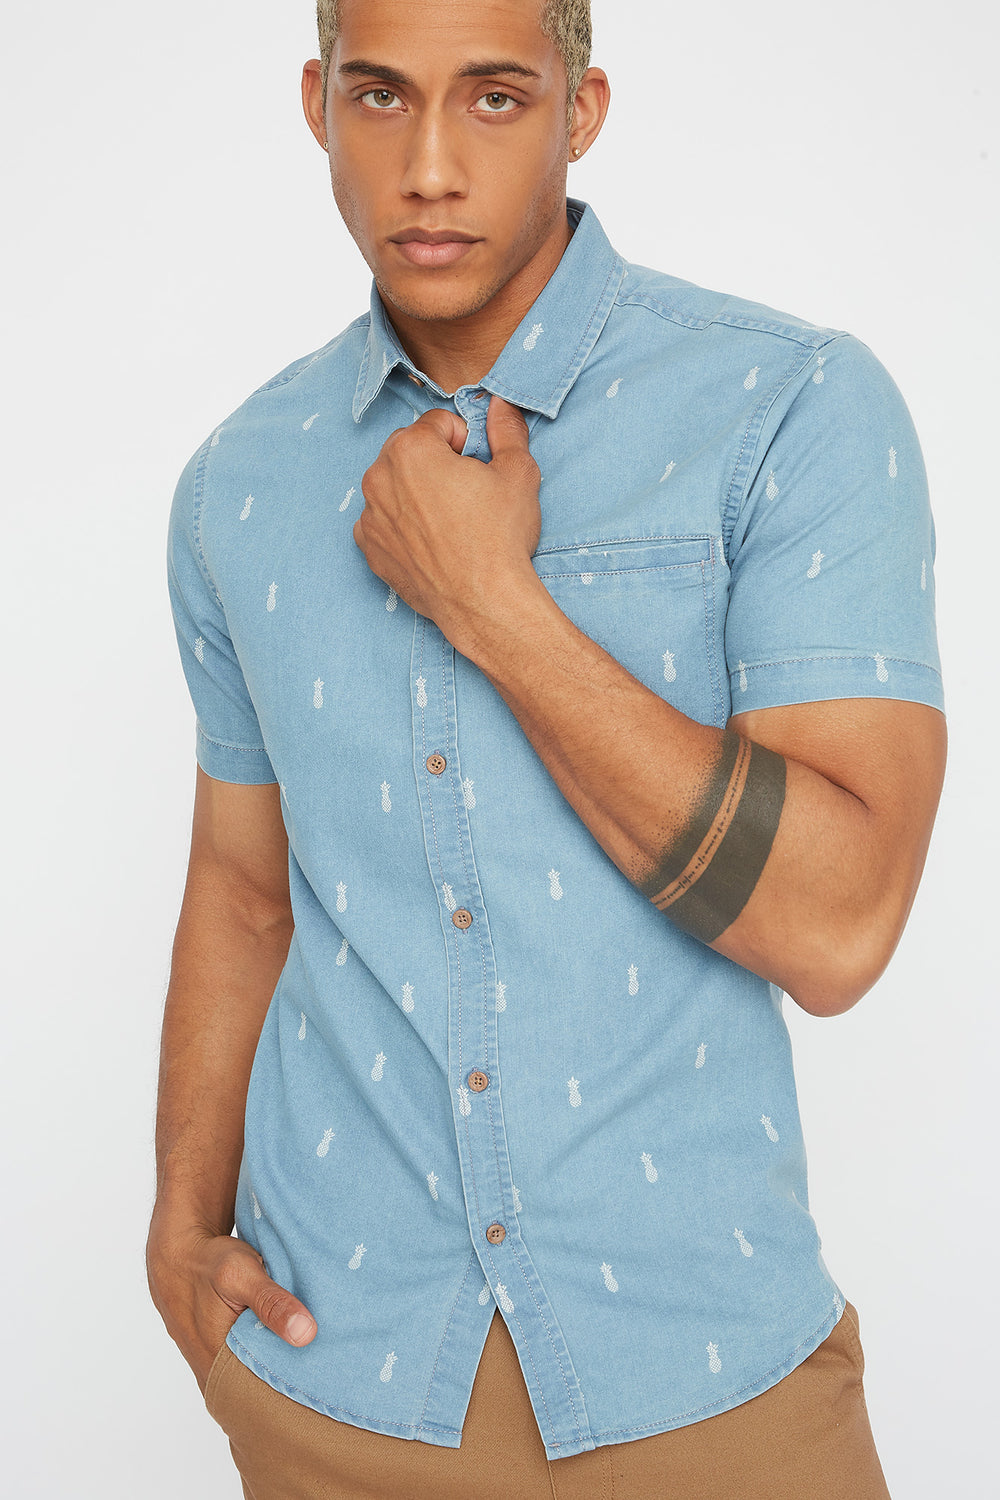 Palm Tree Printed Chambray Button-Up Short Sleeve Rinse Denim